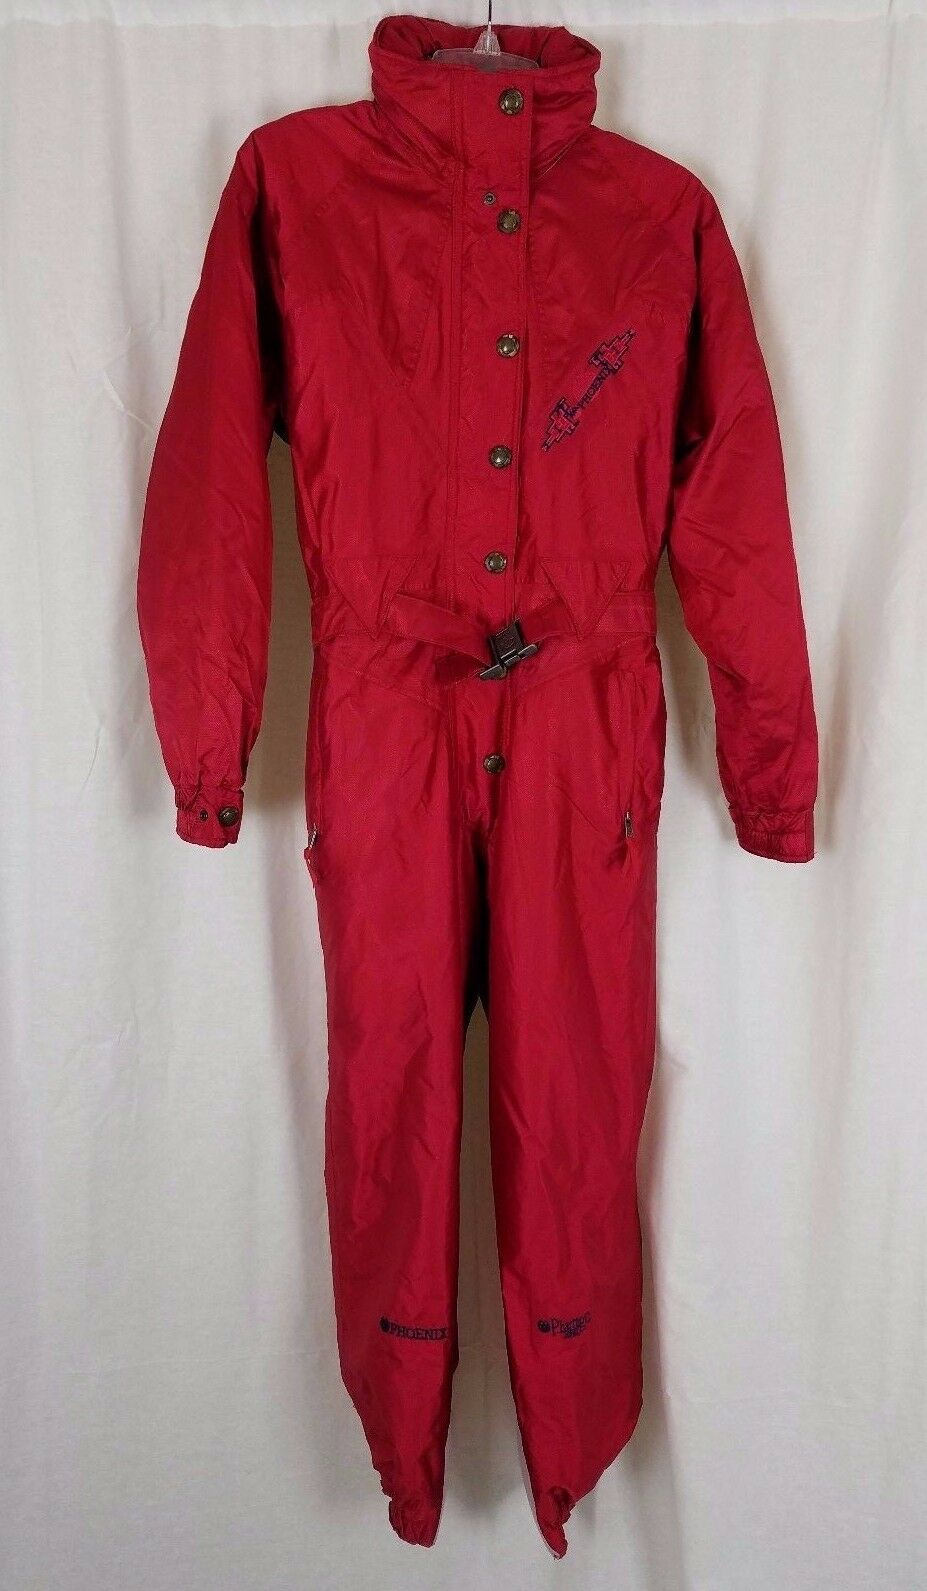 Vintage Phoenix Pharrago Insulated One Piece Winter Ski Snowsuit Womens 10 Red